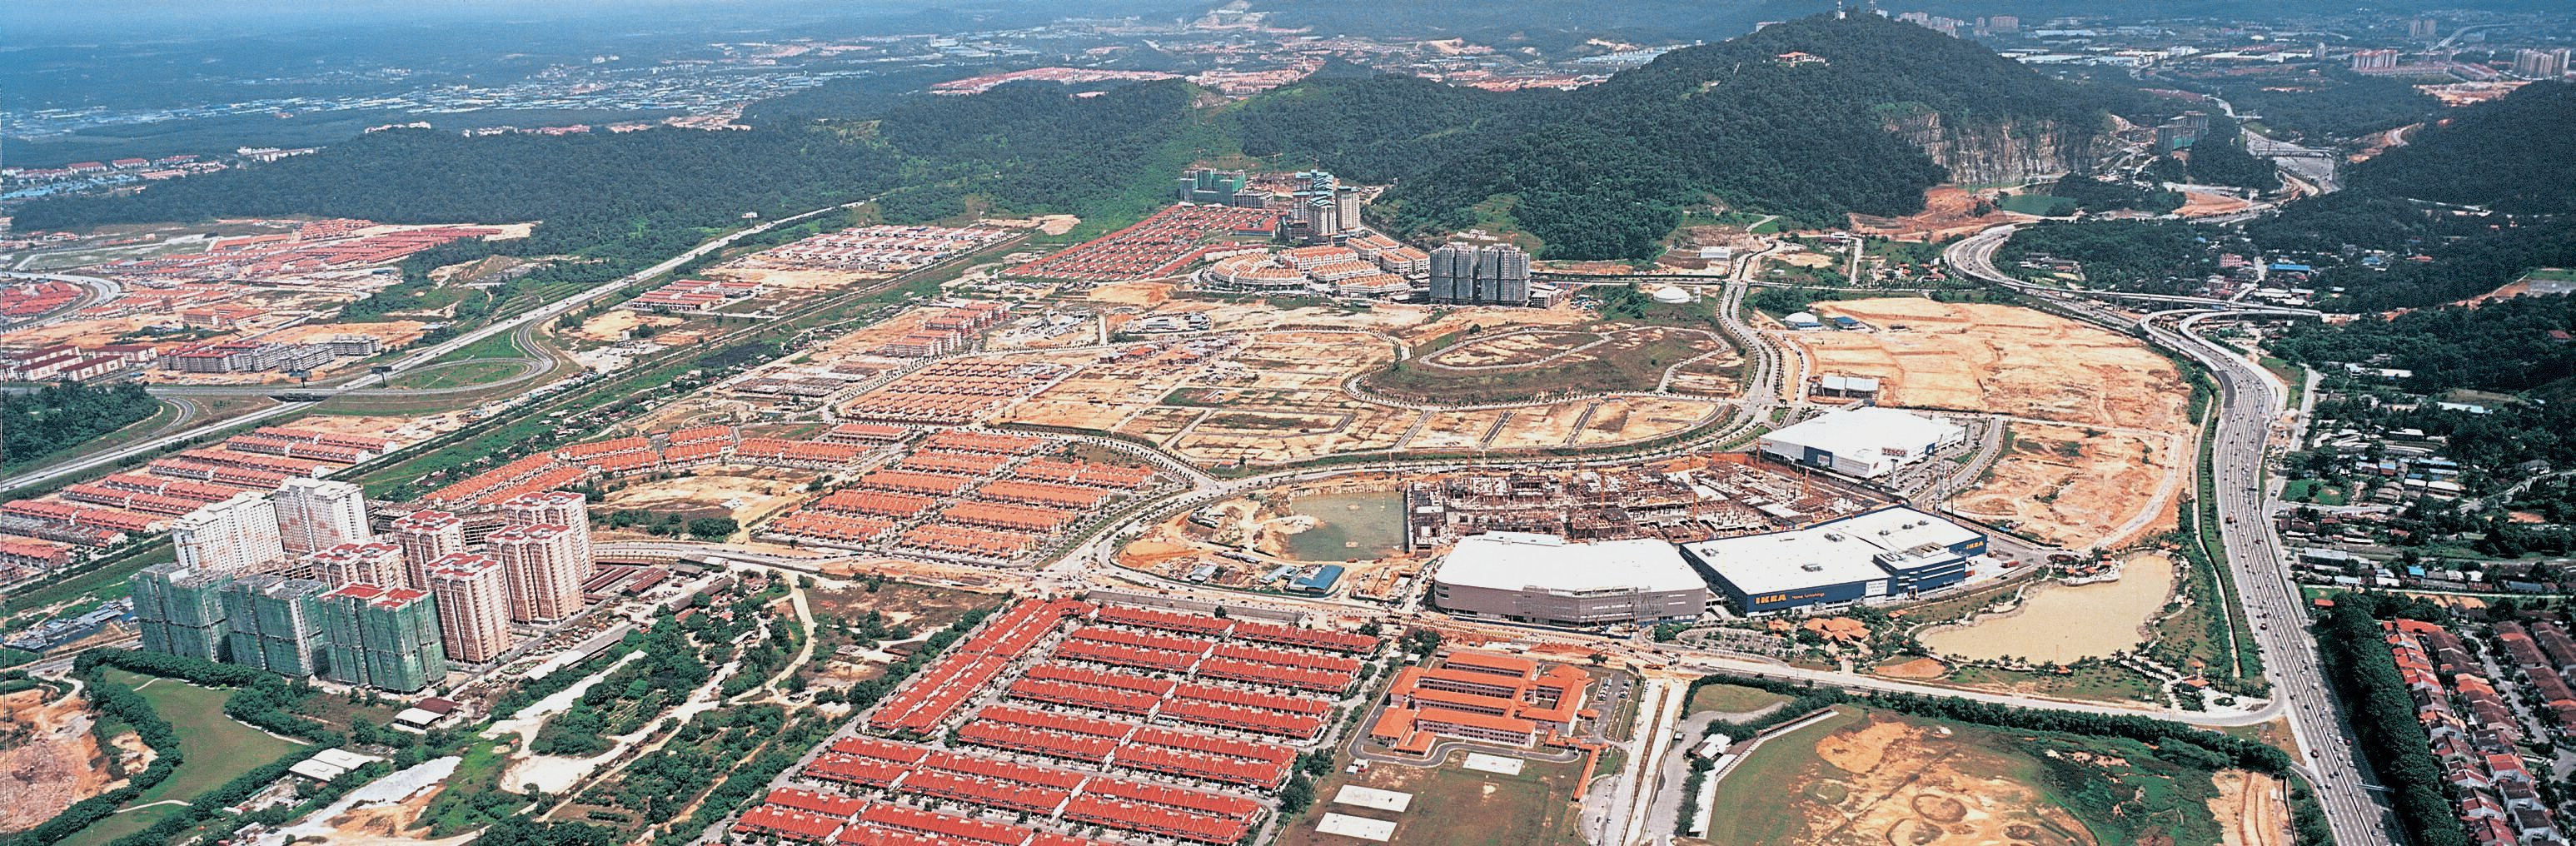 Aerial view of the rapidly developing golden triangle of PETALING JAYA encompassing Damasara Perdana, Mutiara Damansara and Bandar Utama.